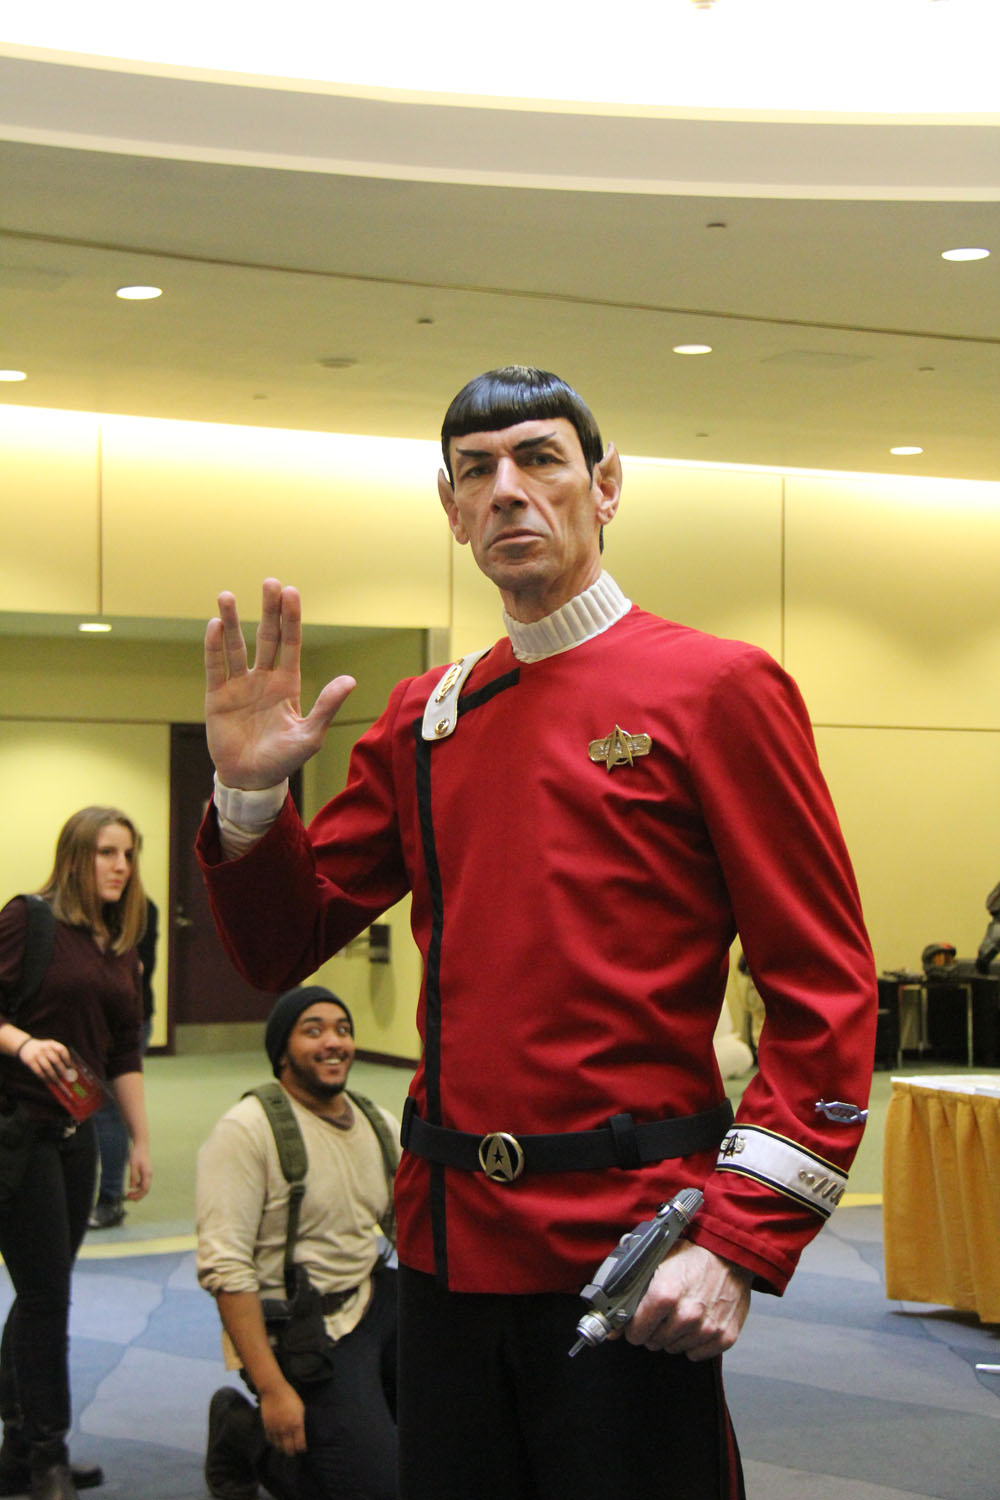 Cosplayer dressed as Spock